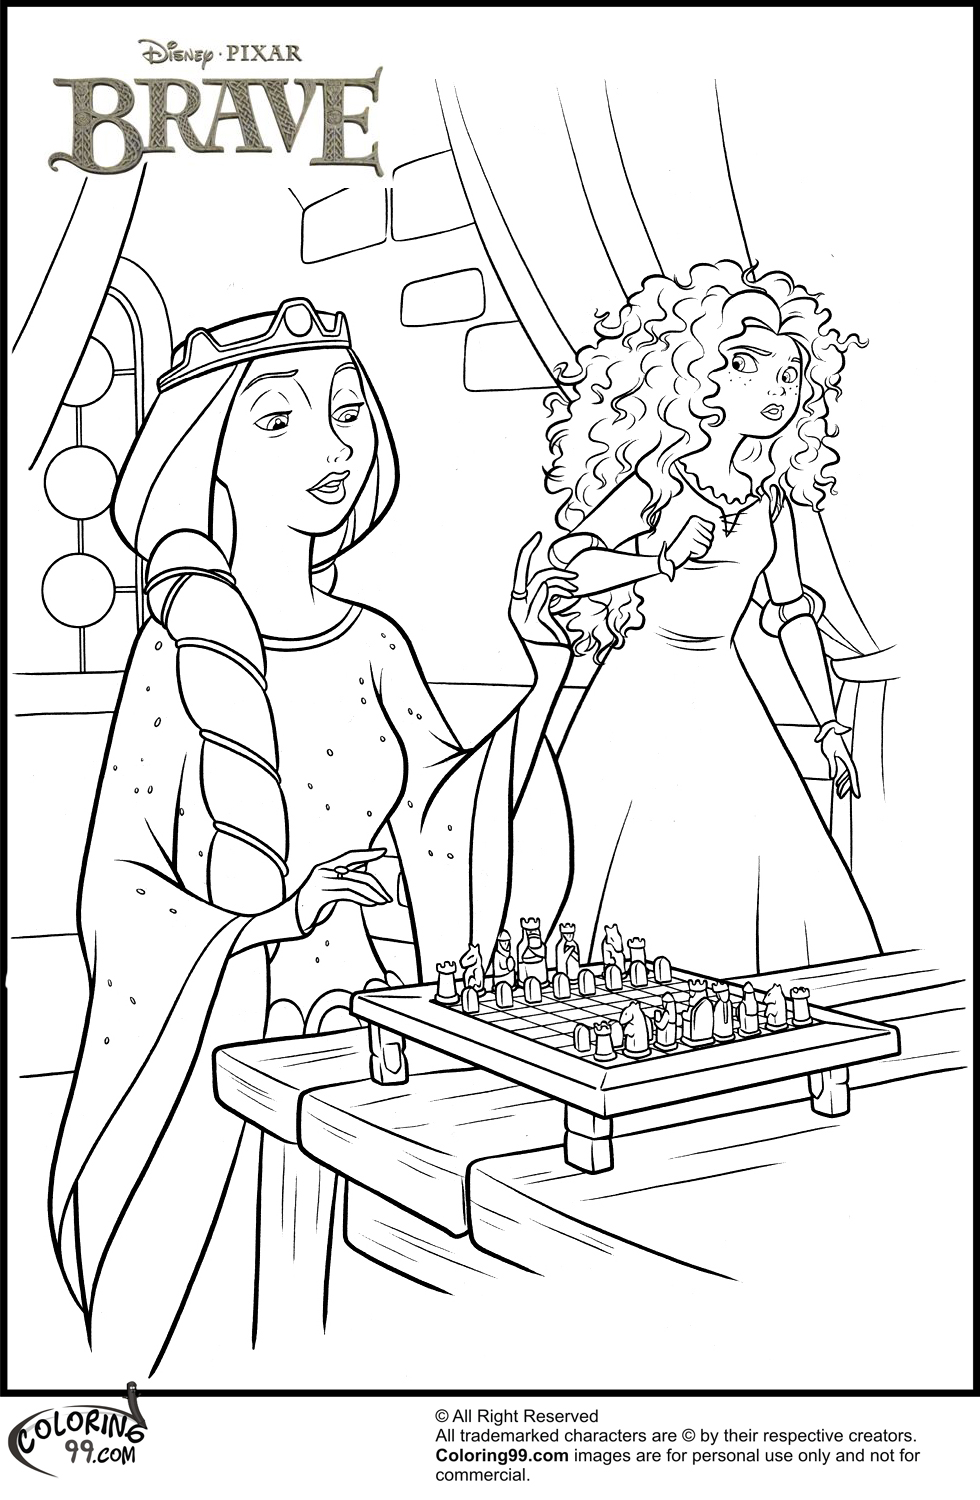 Coloring Pages Princess Merida : Disney princess merida coloring pages team colors